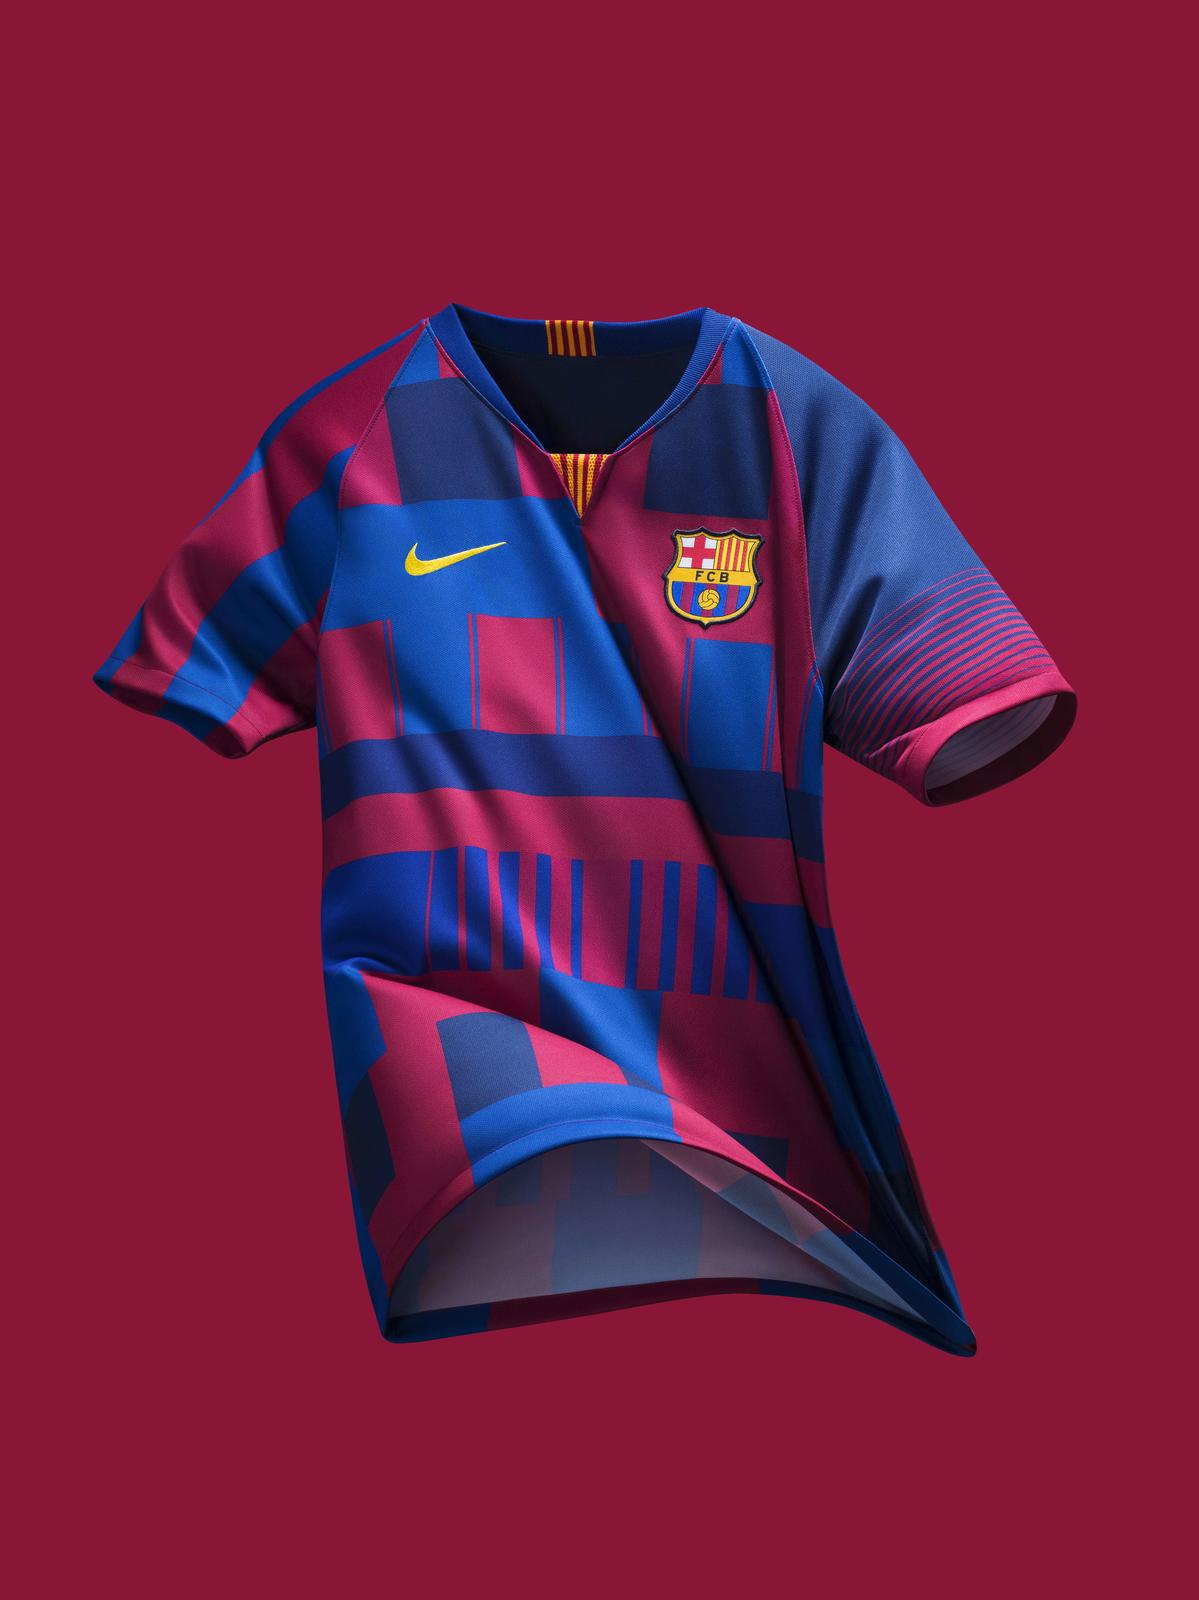 fc barcelona what the 20th anniversary jersey nike news fc barcelona what the 20th anniversary